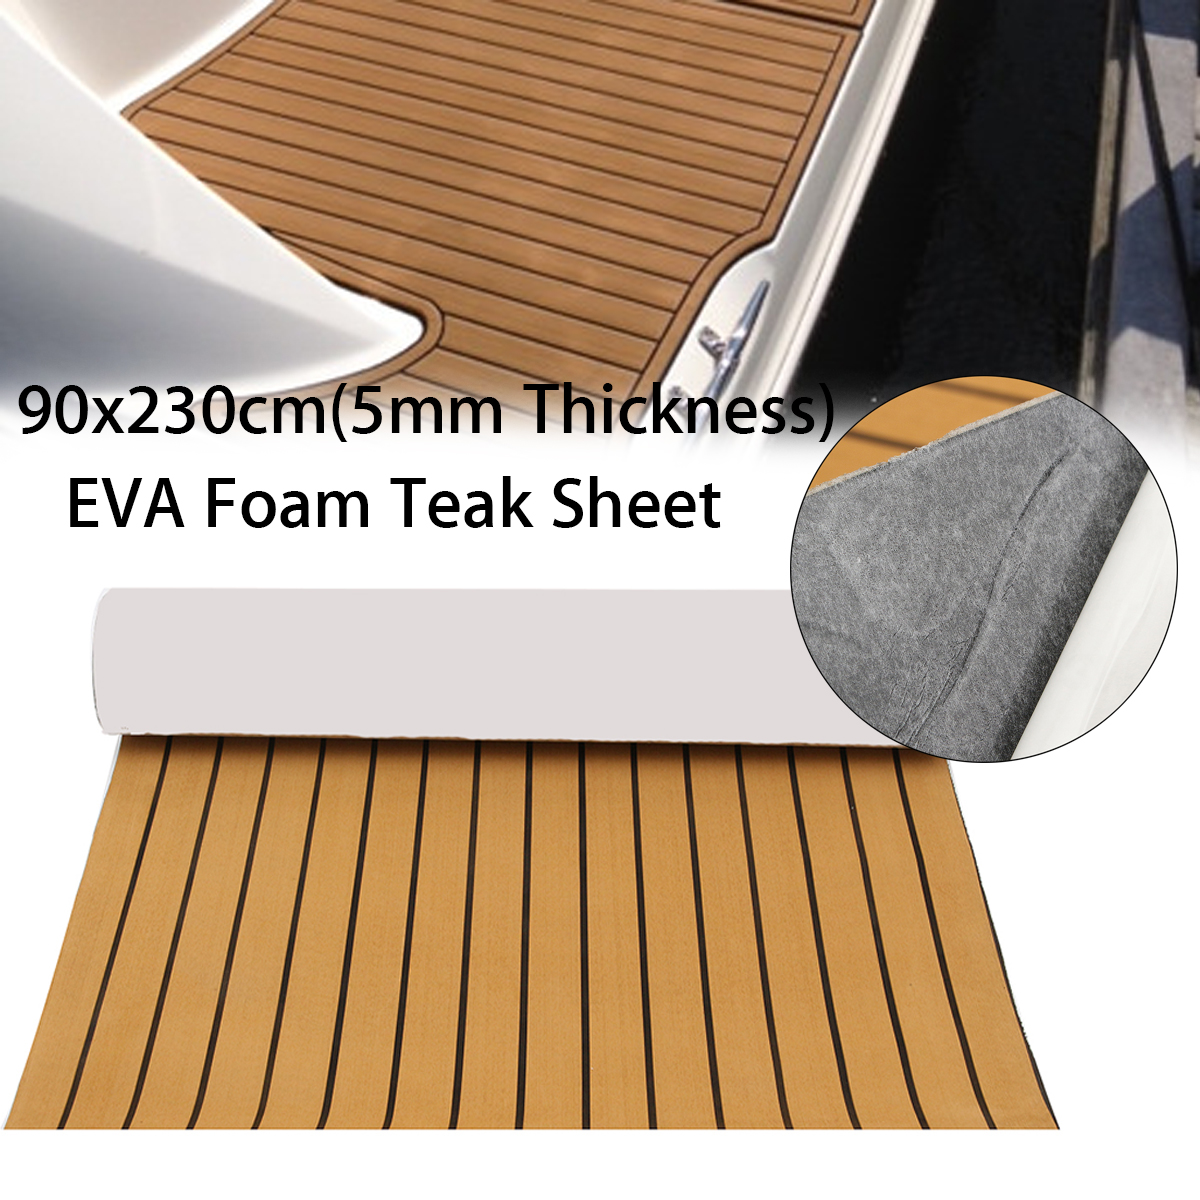 90x230cm Self-Adhesive EVA 5mm Foam Teak Sheet teakdecking Boat Yacht Synthetic Decking Gold with Black Lines